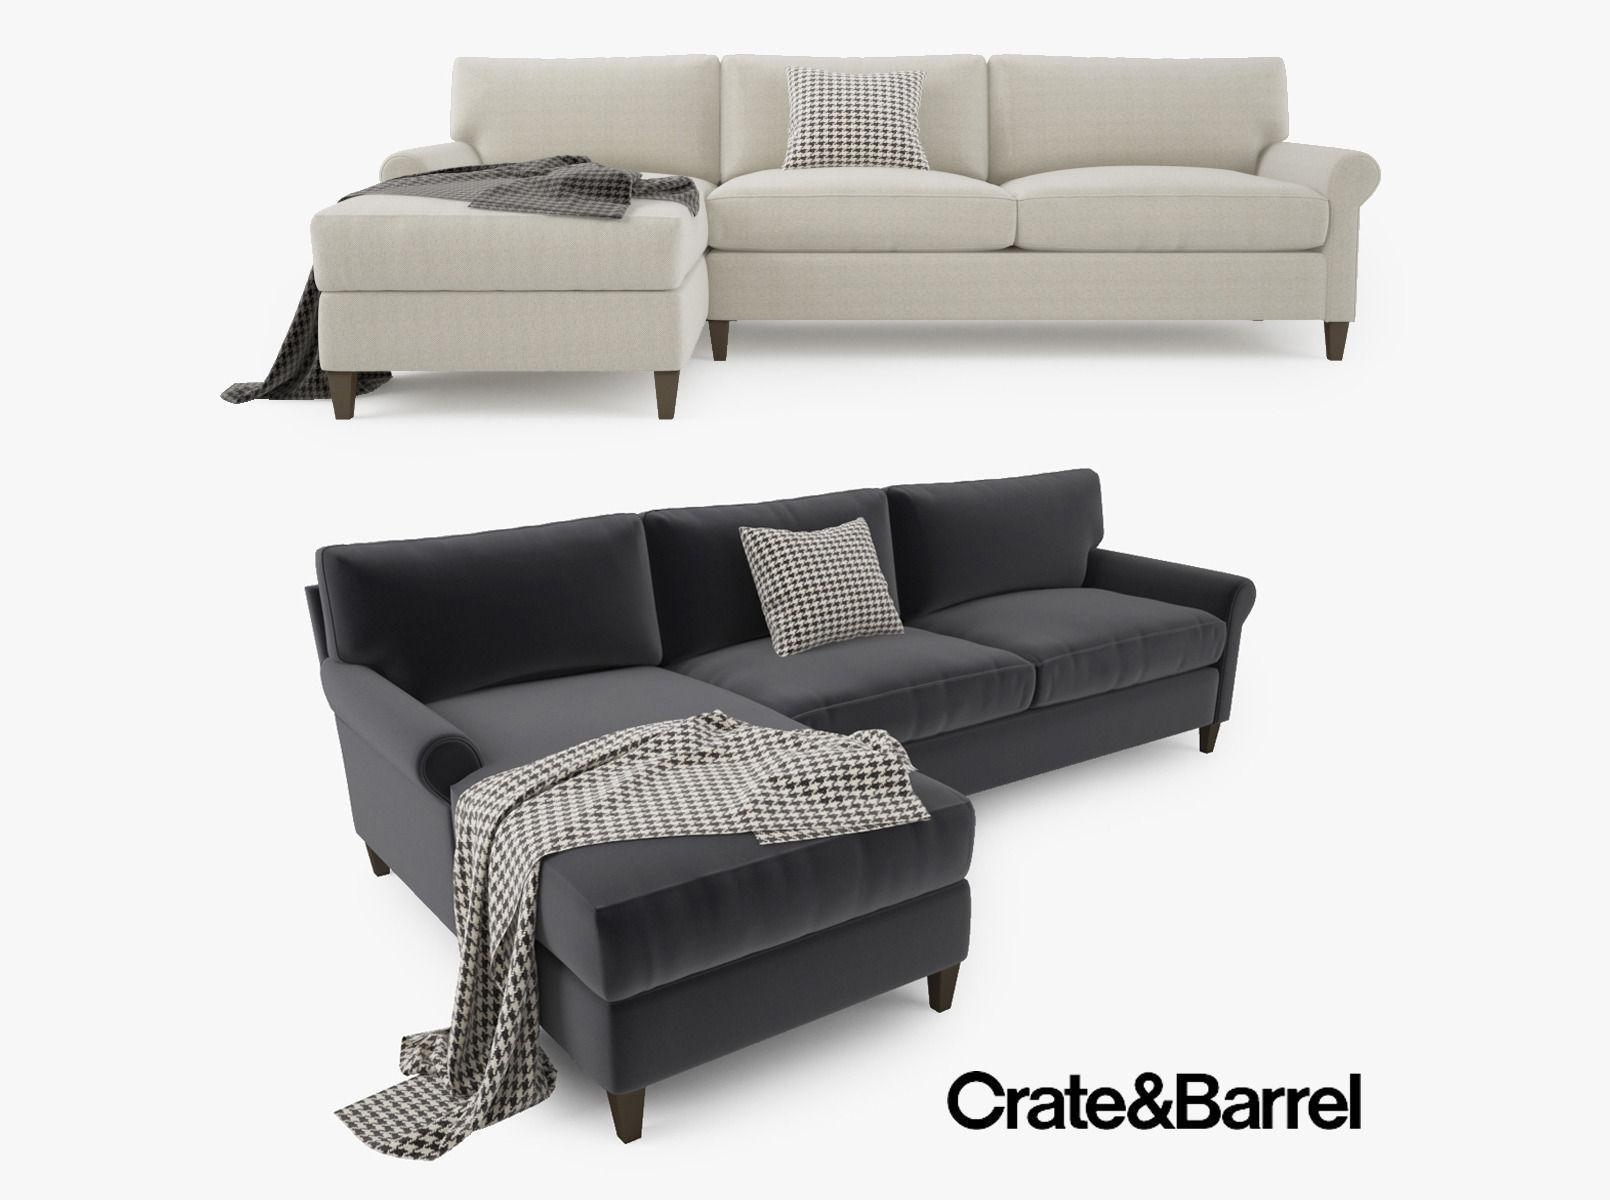 Crate And Barrel Montclair 2 Piece Sectional Sofa 3D Model Max Obj Within Crate And Barrel Sectional (Image 12 of 15)